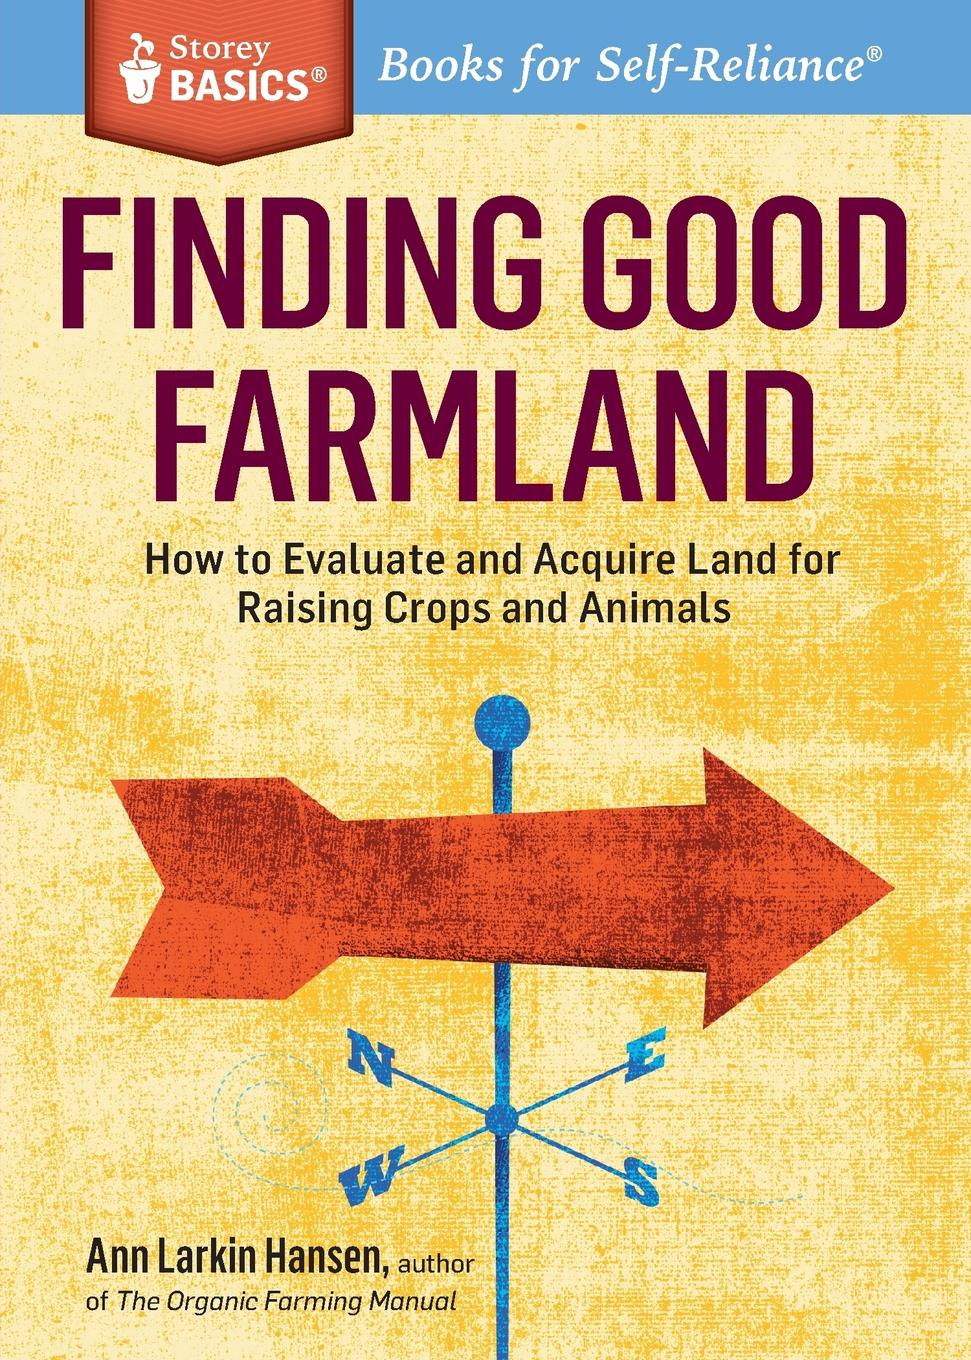 Фото - Ann Larkin Hansen Finding Good Farmland. How to Evaluate and Acquire Land for Raising Crops and Animals. A Storey BASICS. Title mark kopecky managing manure how to store compost and use organic livestock wastes a storey basics title